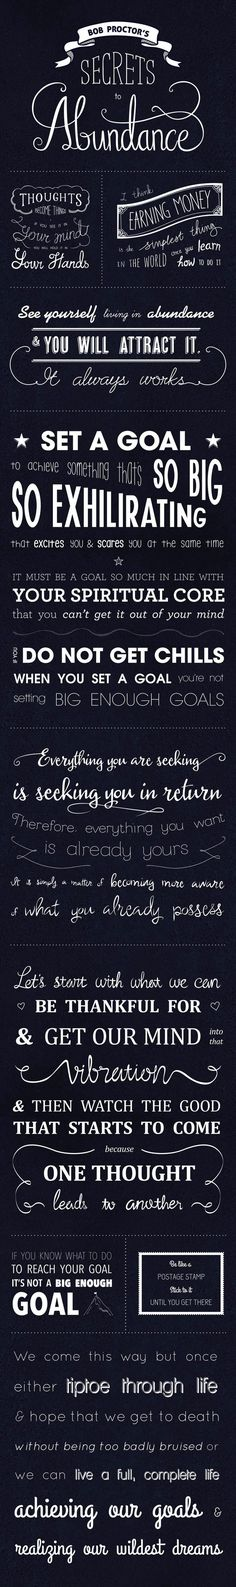 Quotes from Mindvalley and blogpost with life changing tips!